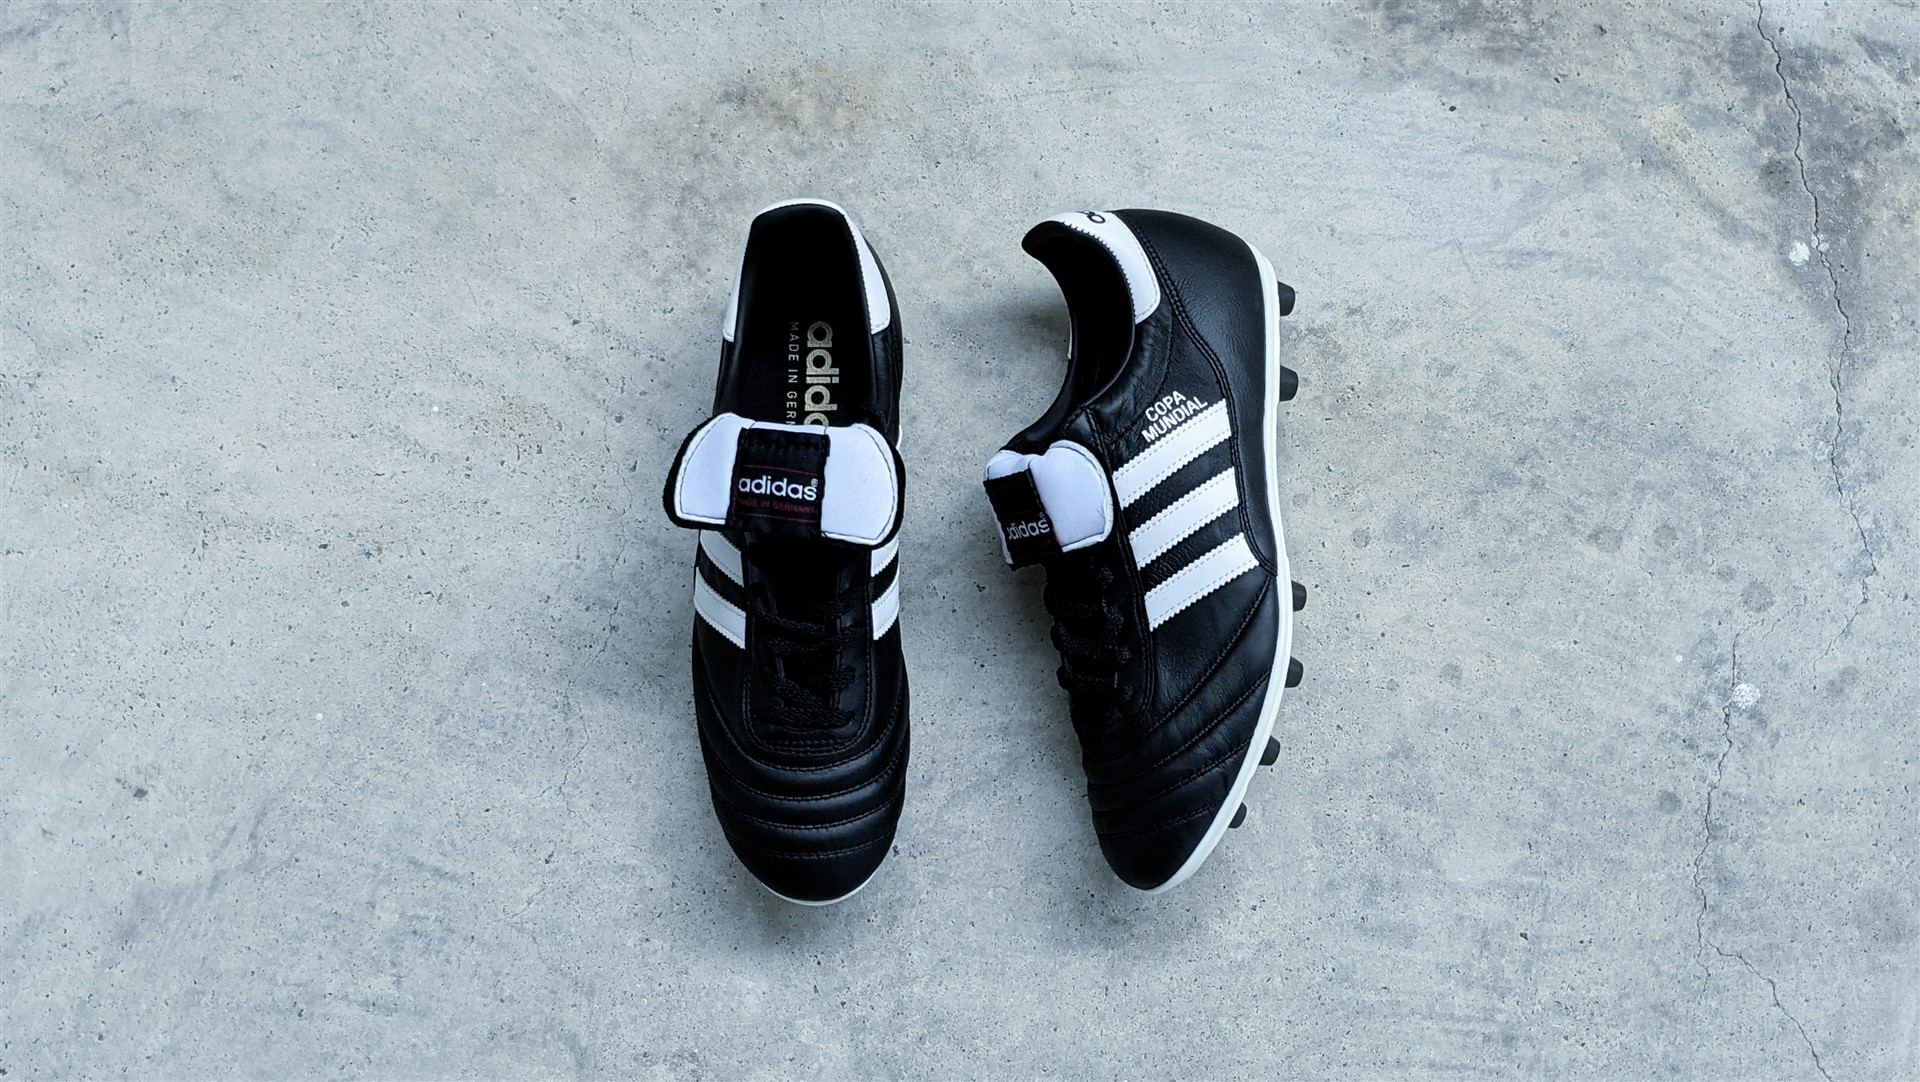 adidas Copa Mundial football boots soccer cleats review